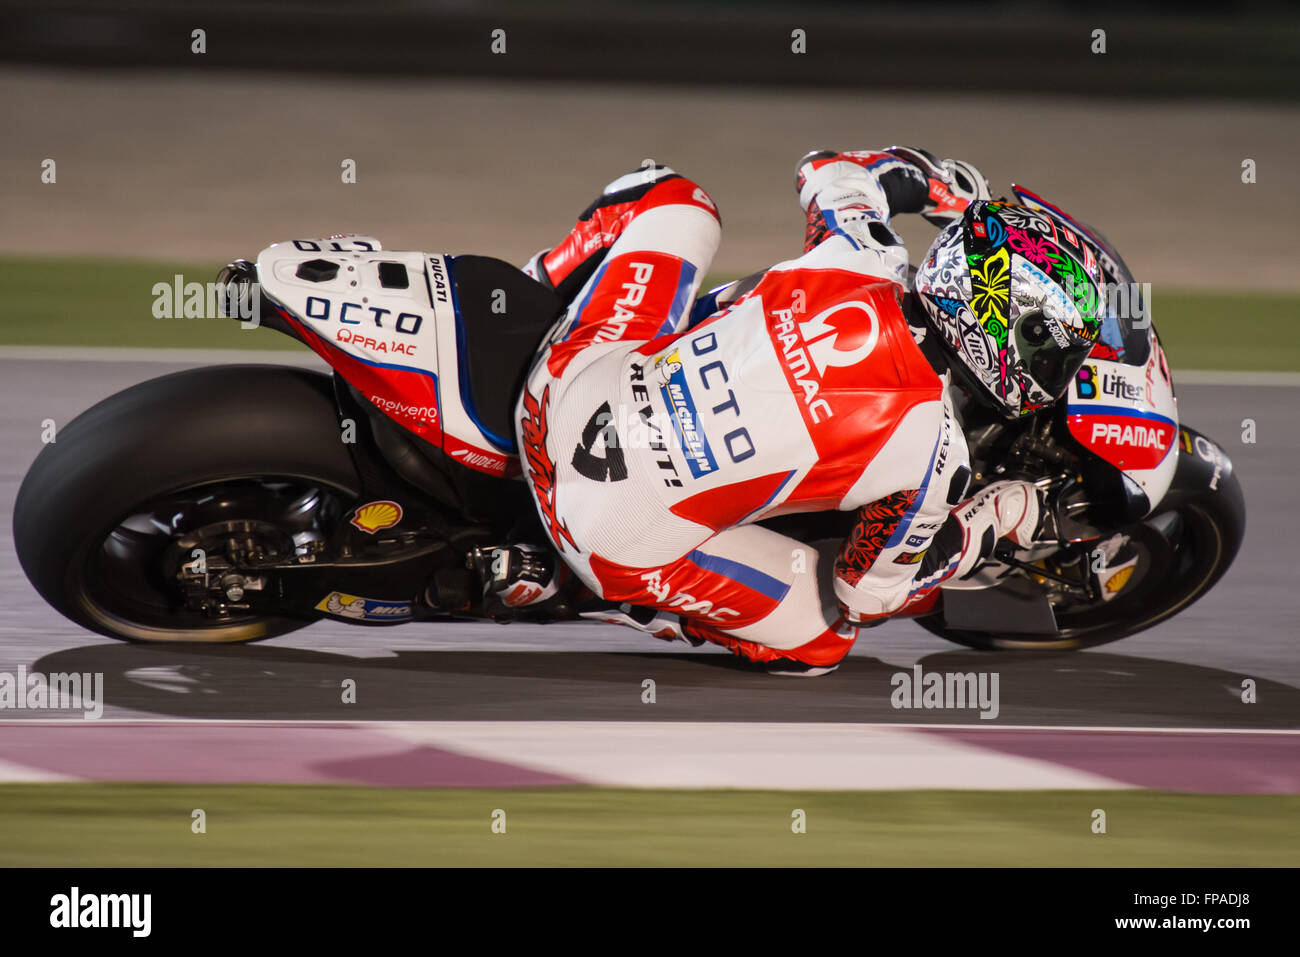 Losail International Circuit, Qatar. 18th March 2016.  Danilo Petrucci during MotoGP Free Practice session 2 of - Stock Image